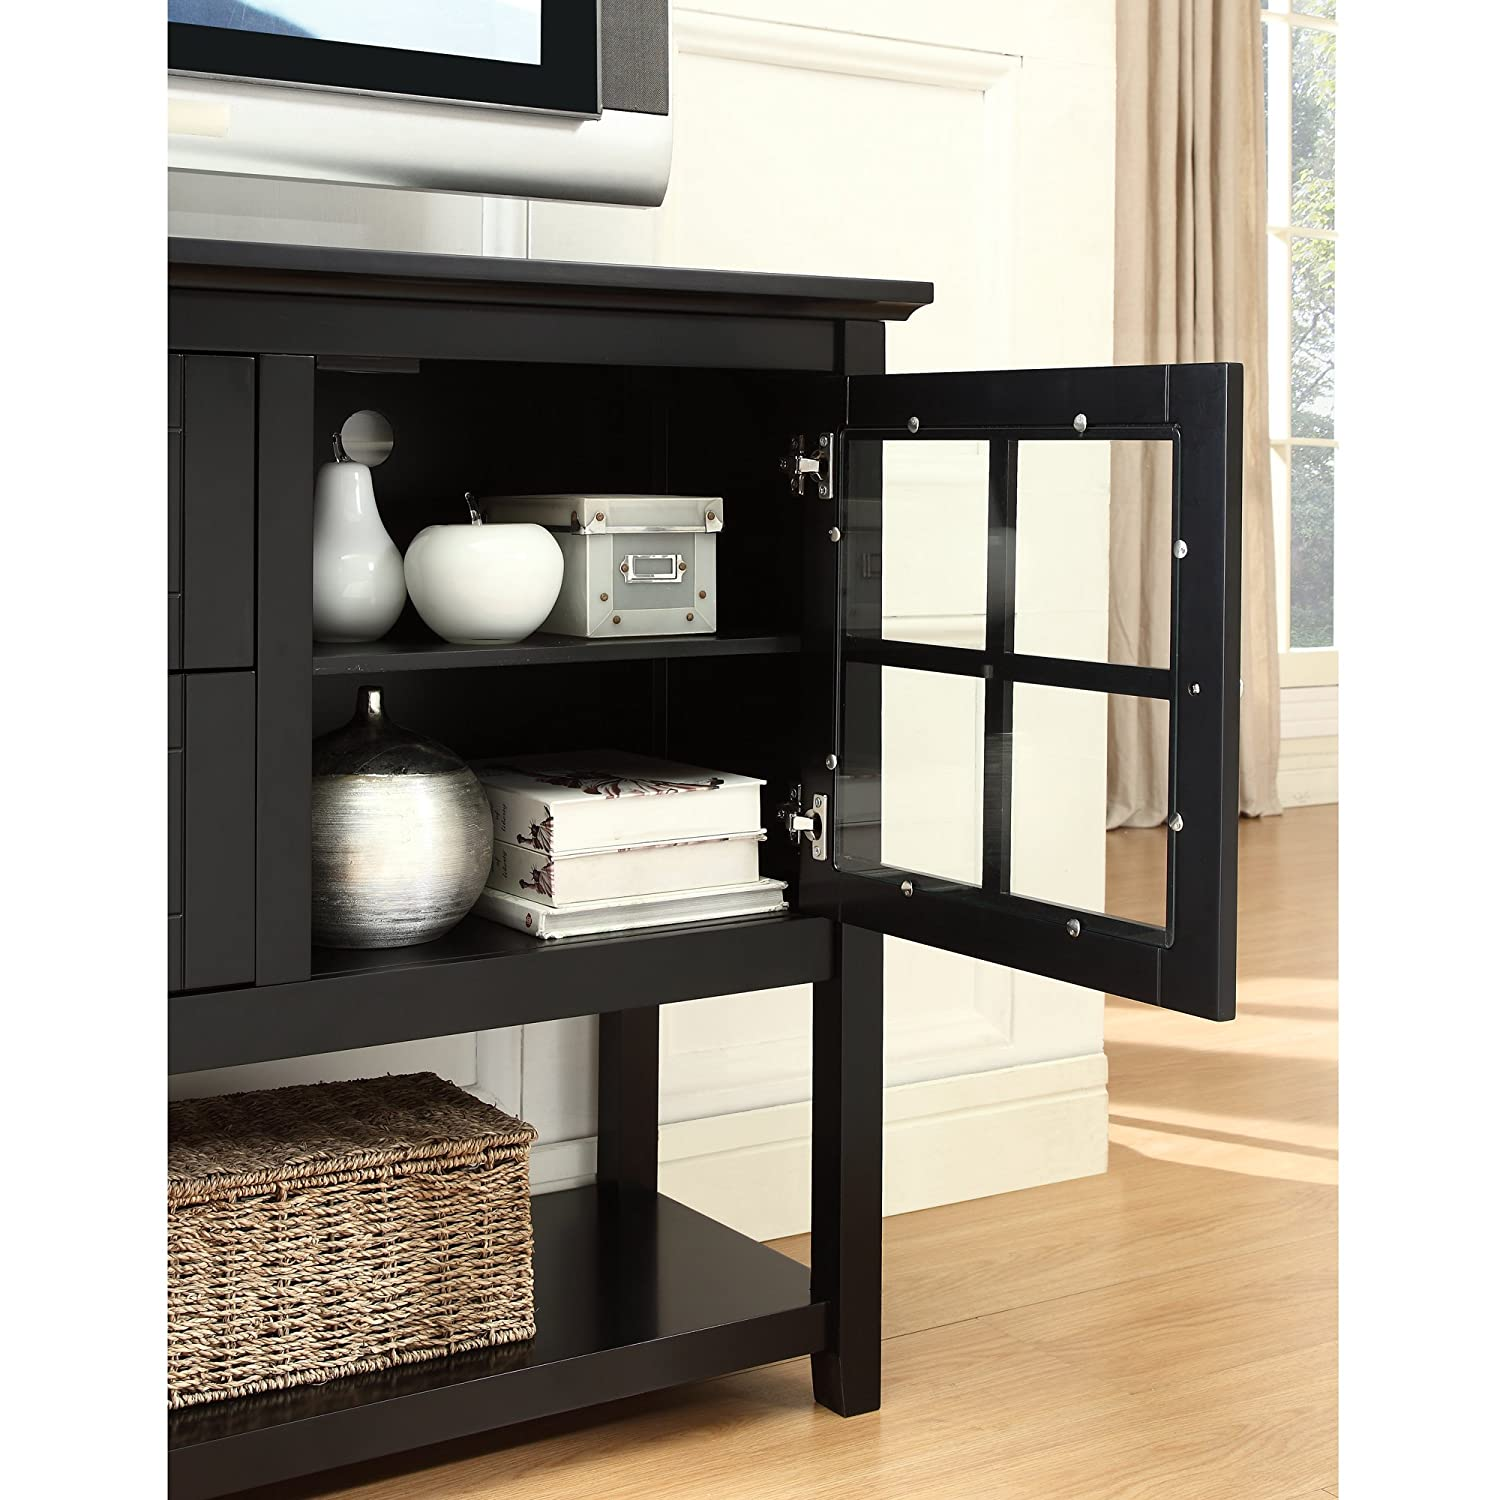 Amazon we furniture 52 console table wood tv stand console amazon we furniture 52 console table wood tv stand console black kitchen dining geotapseo Gallery